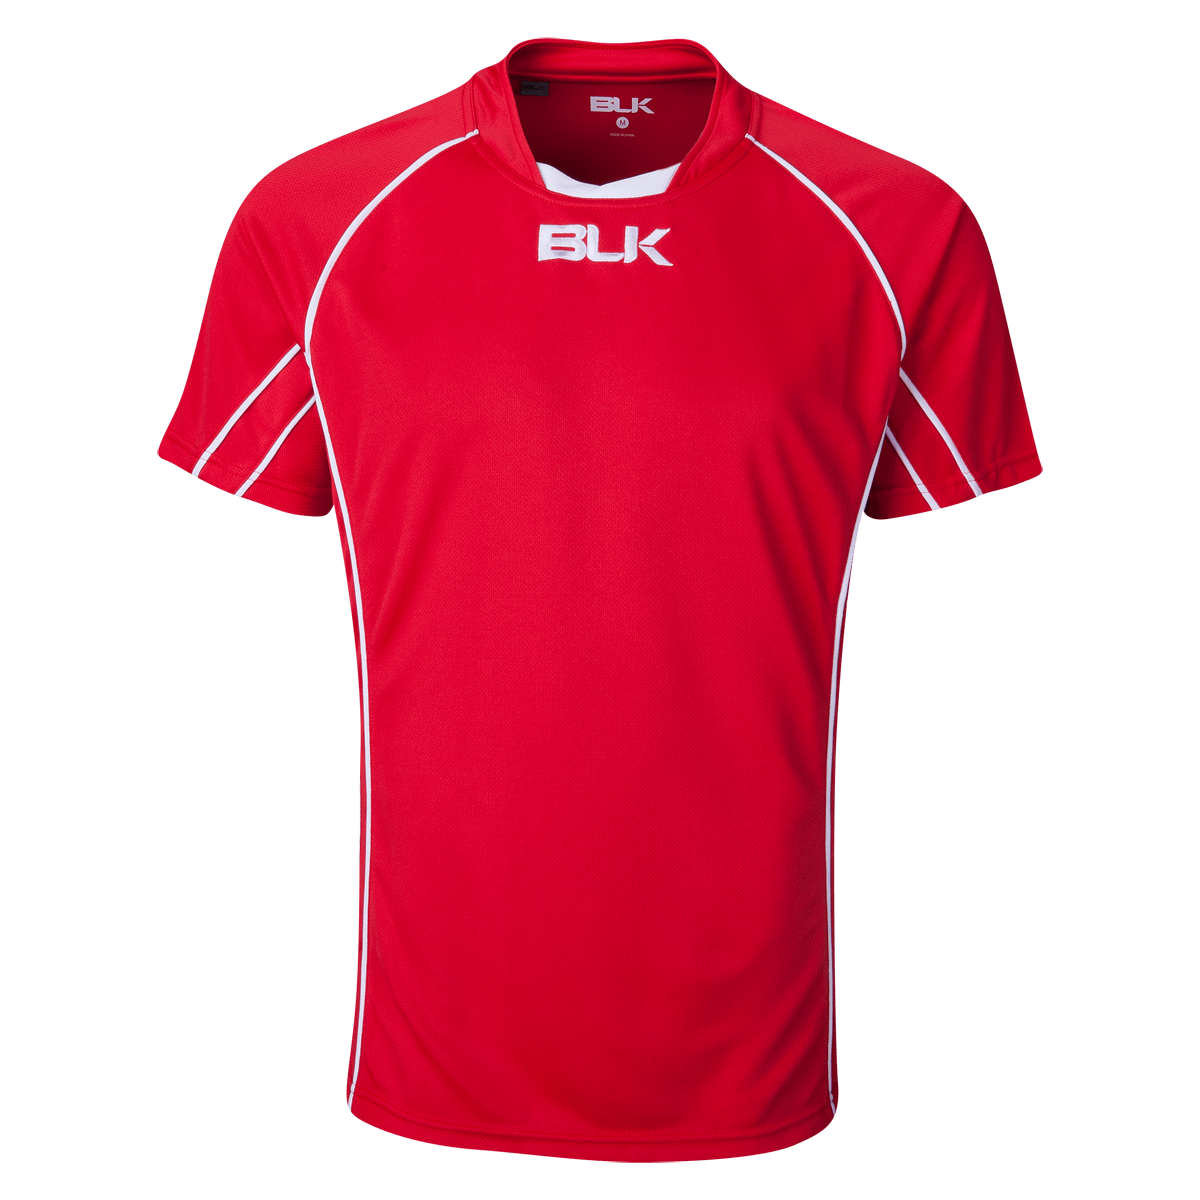 BLK Red Icon Jersey